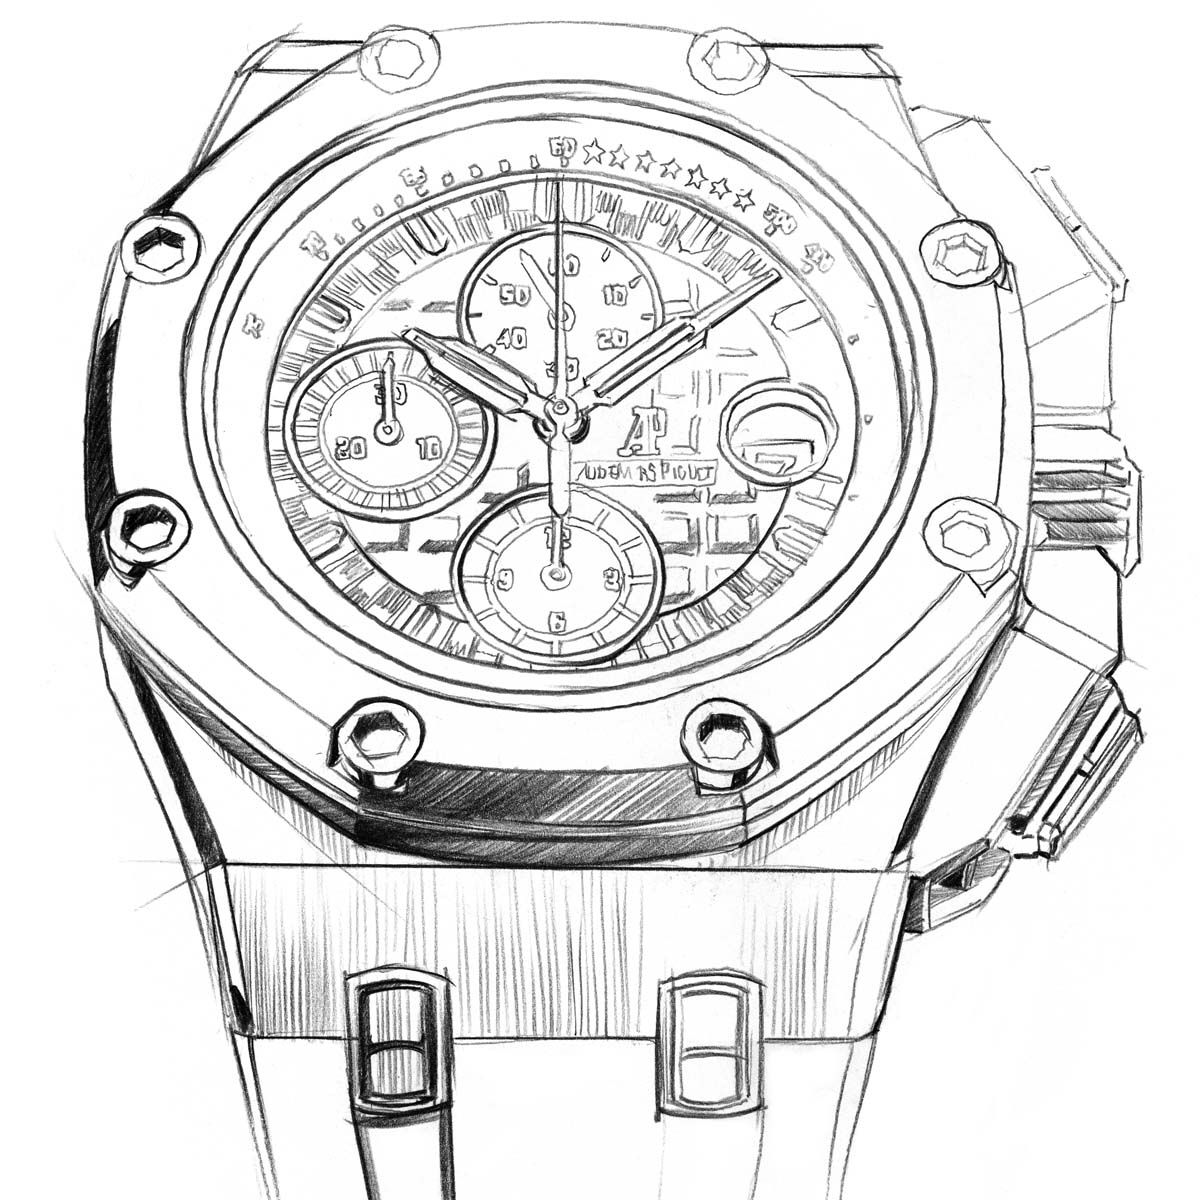 A Drawing Of A Limited Edition Audemars Piguet Royal Oak